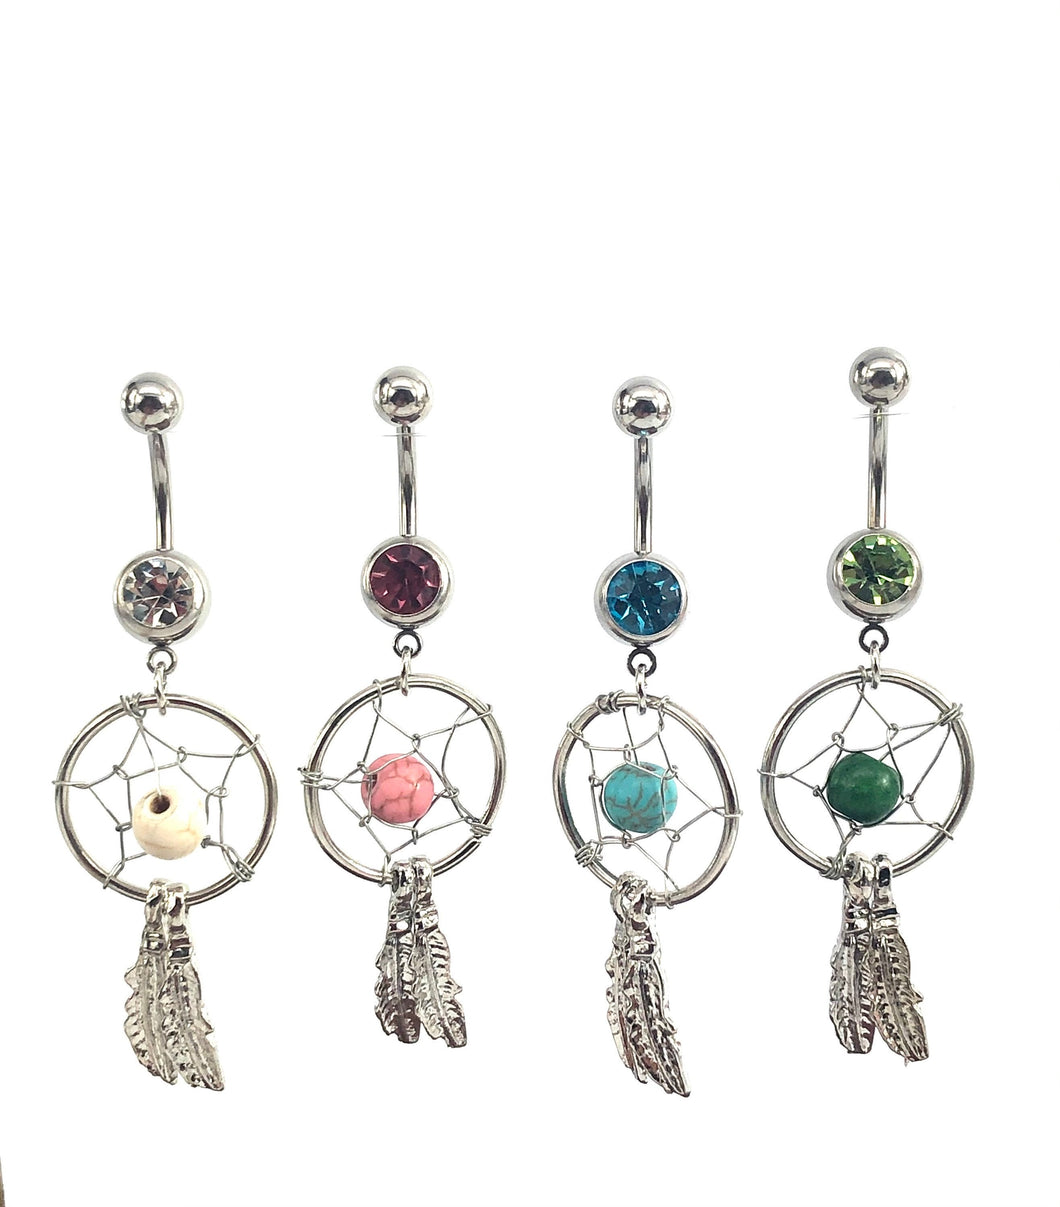 Stainless steel curve bar , dream catcher gem belly ring, SKU# NBR029